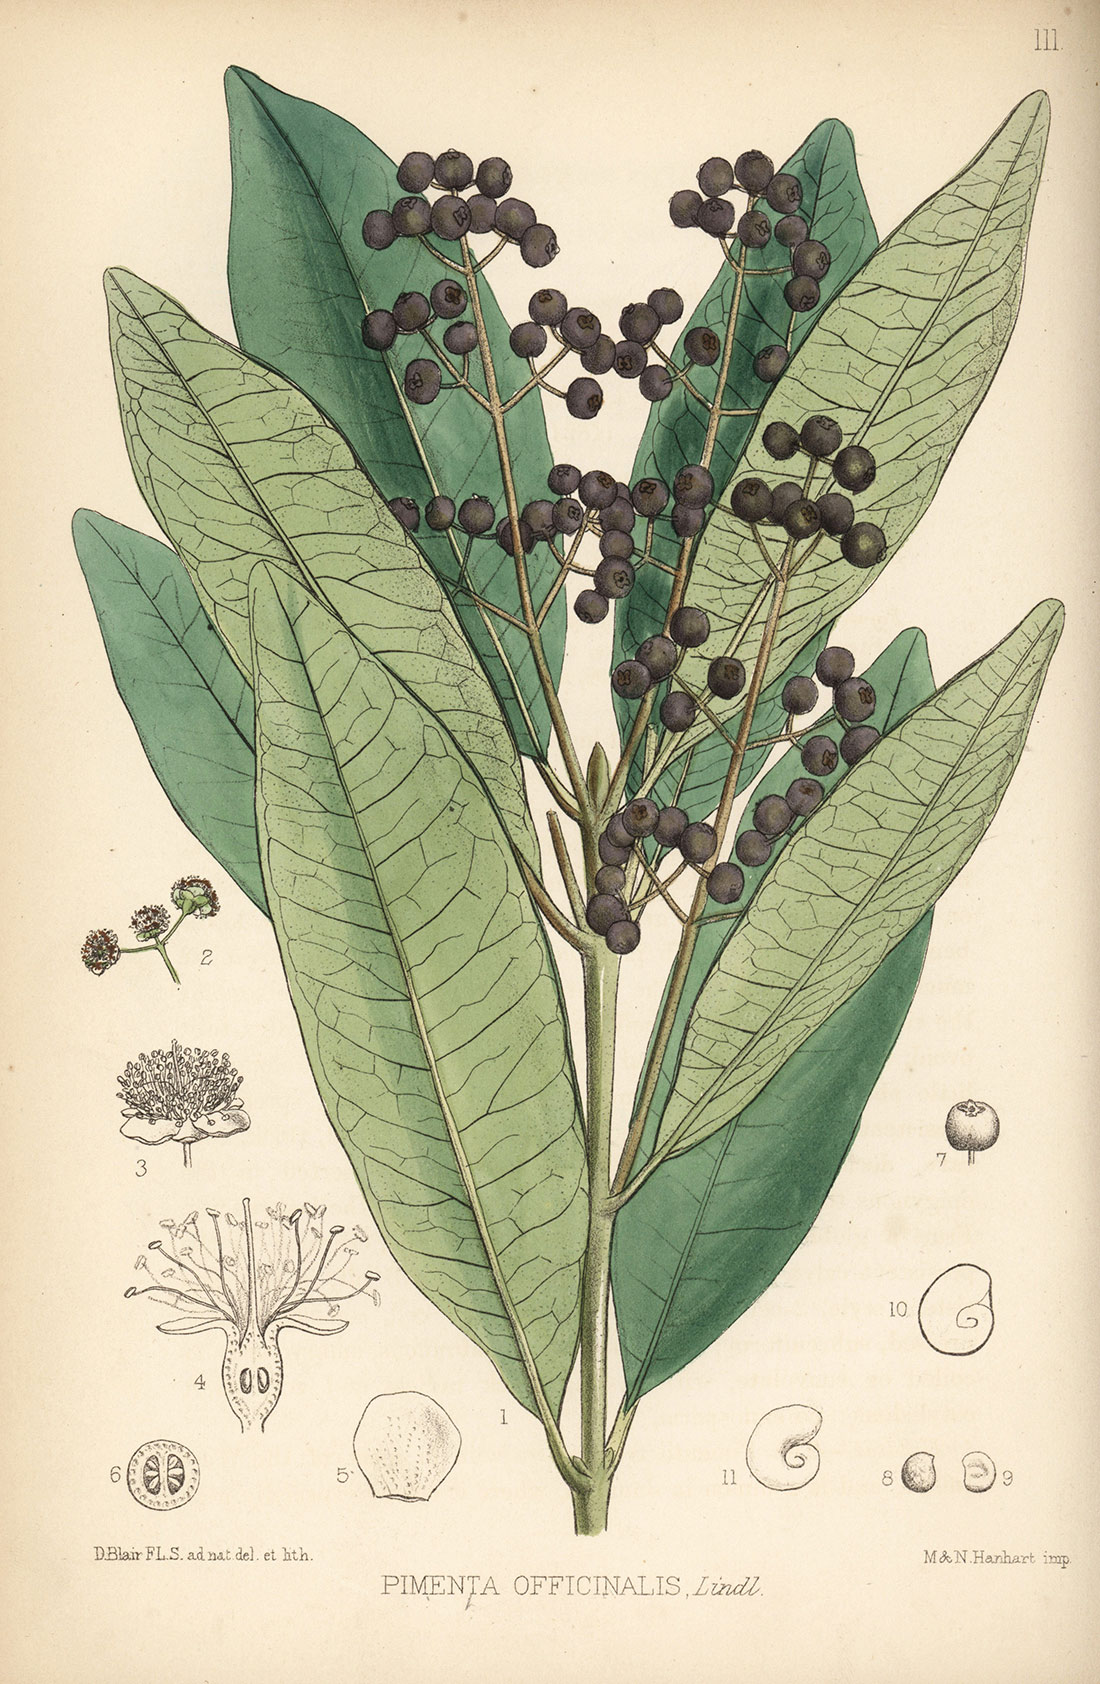 Allspice, or Jamaica pepper. Handcoloured lithograph by Hanhart after a botanical illustration by David Blair from Robert Bentley and Henry Trimen's Medicinal Plants, London, 1880.